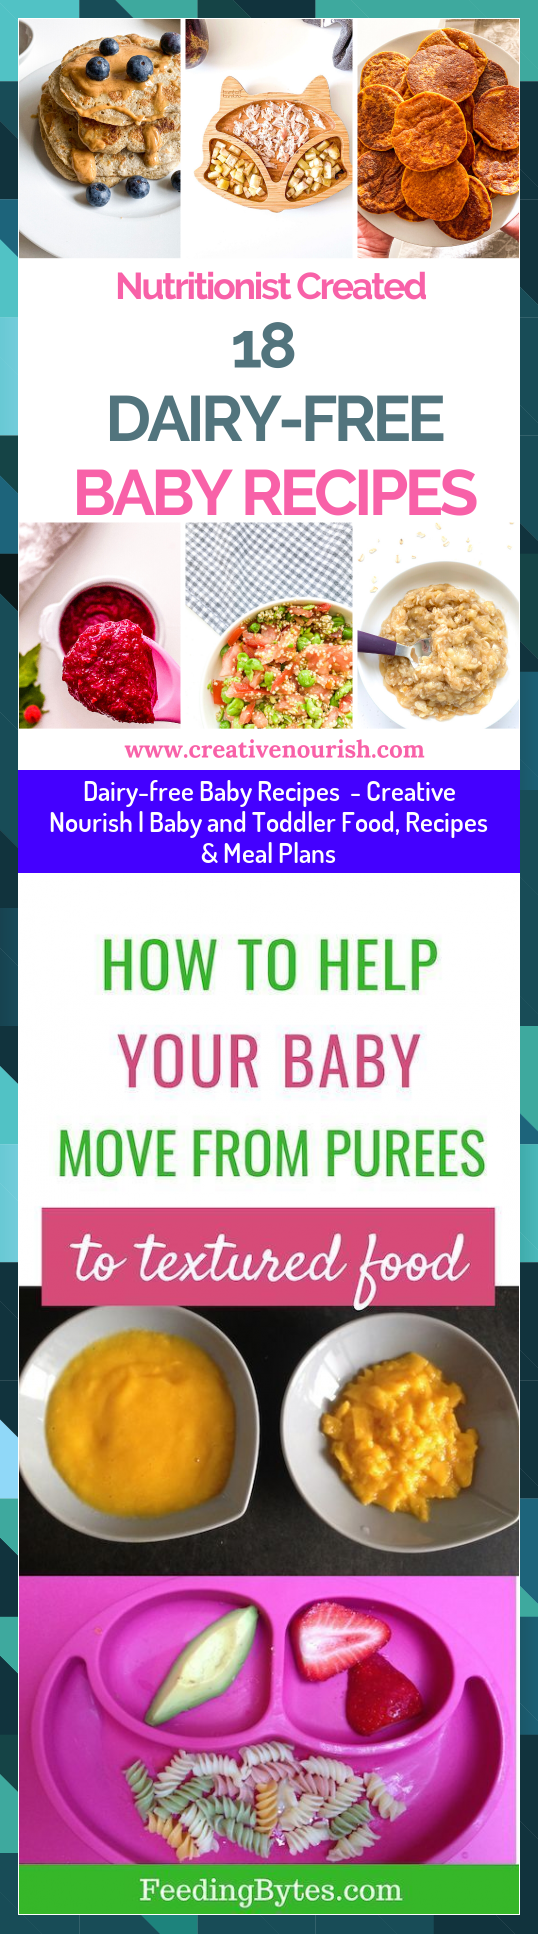 Dairyfree Baby Recipes  Creative Nourish  Baby and Toddler Food Recipes  Meal Plans